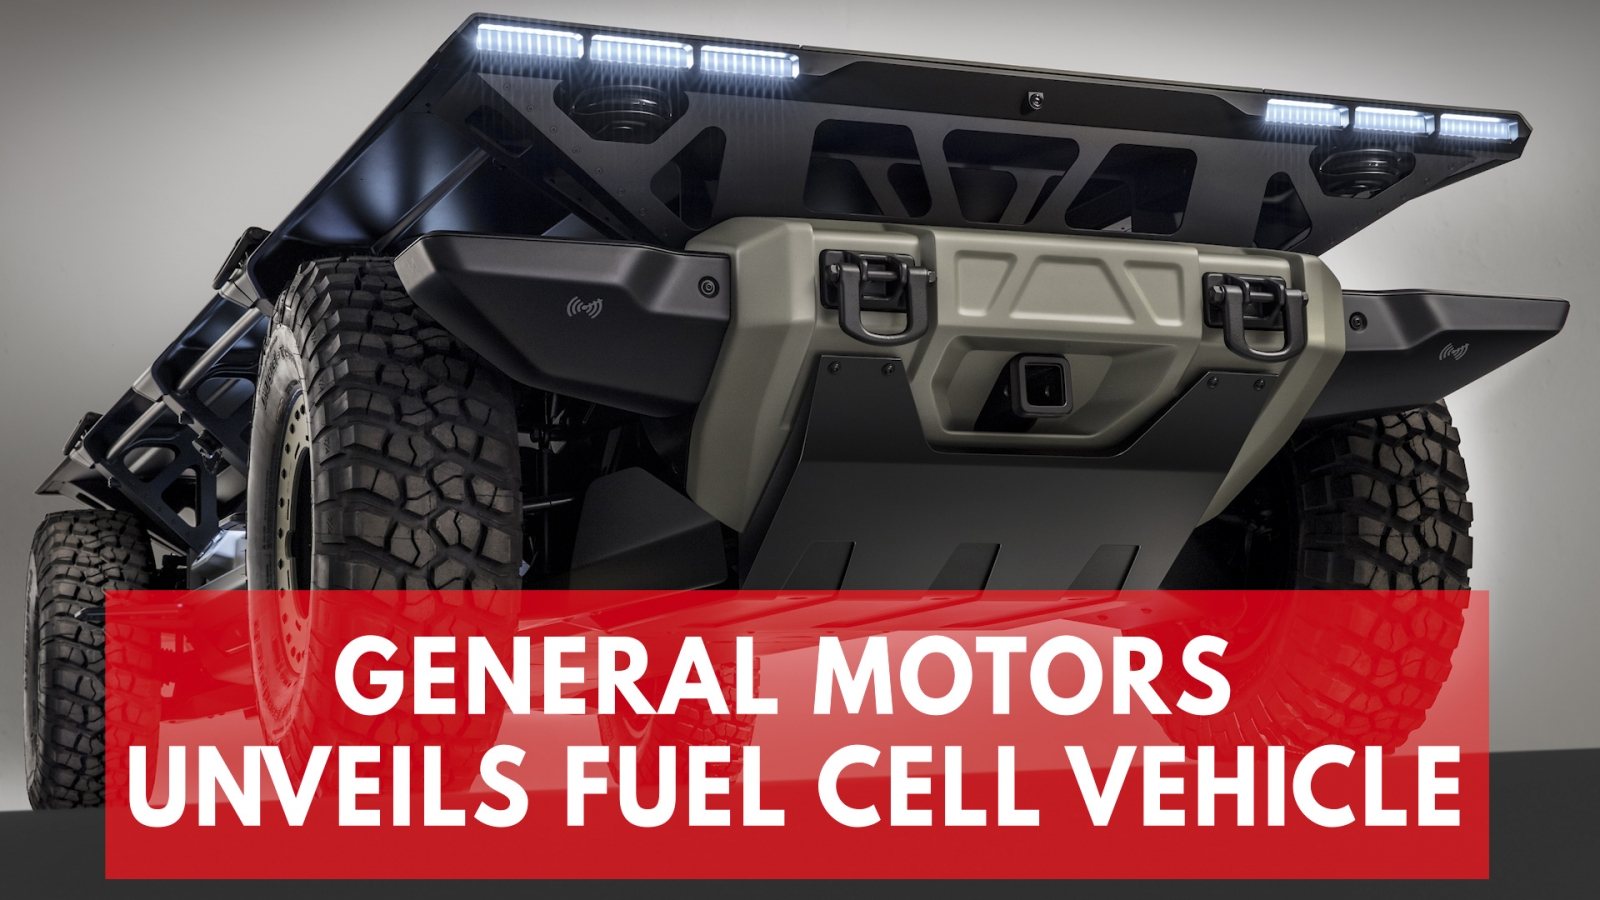 gms-driverless-fuel-cell-concept-vehicle-surus-can-help-during-disasters